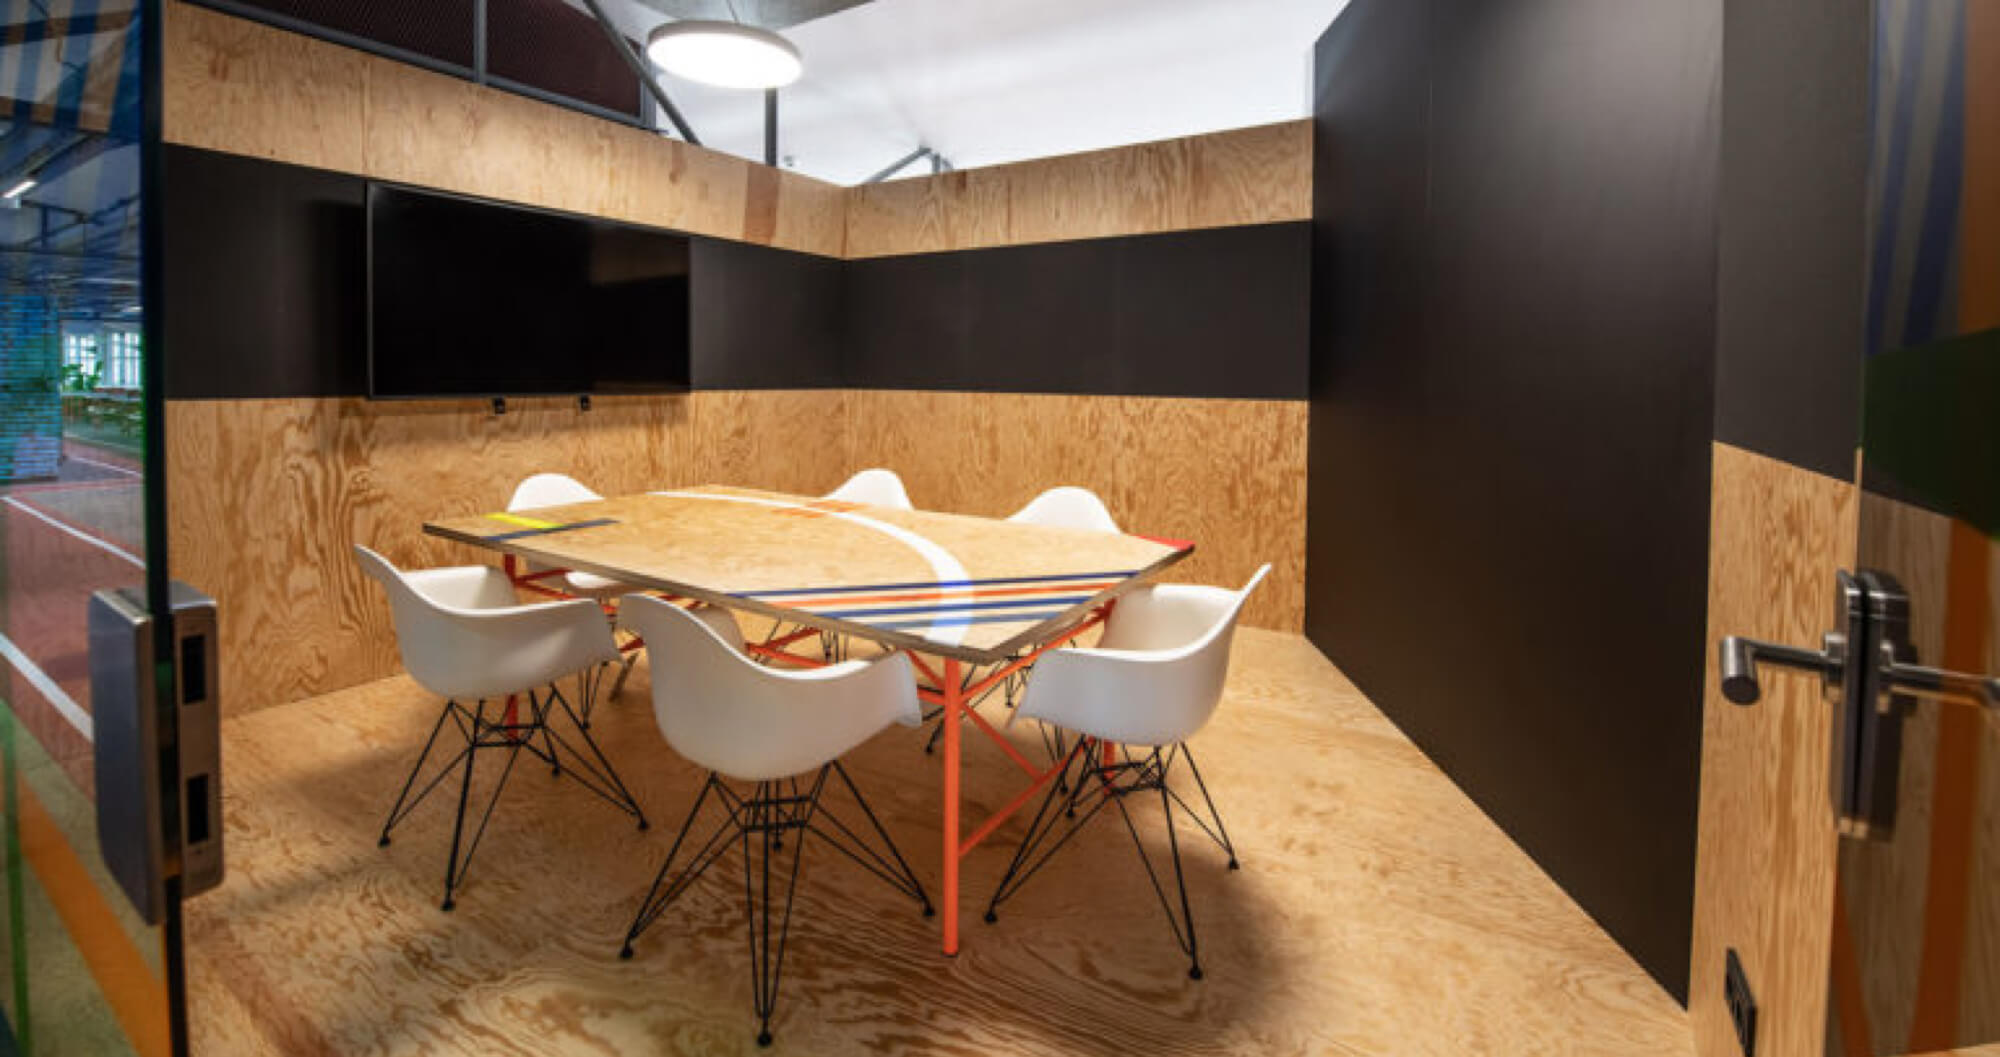 Meetingroom with wooden walls and floors